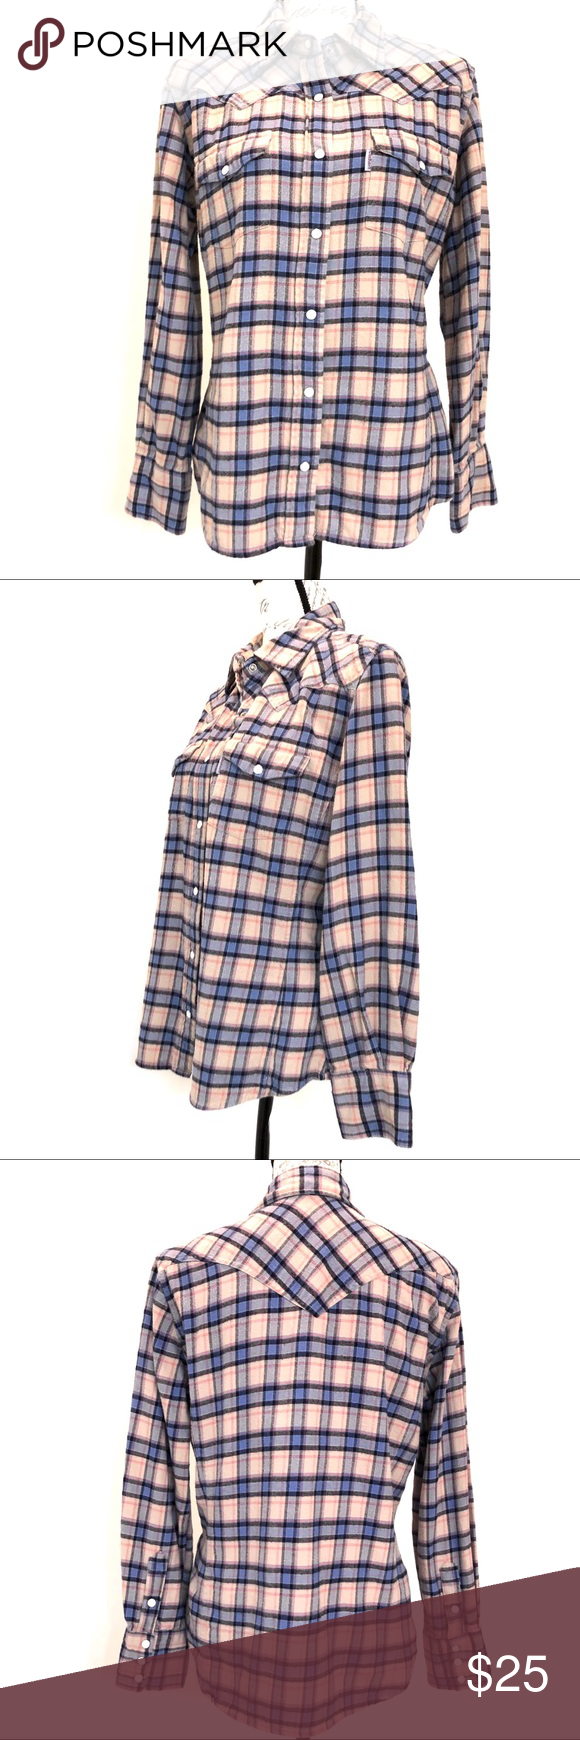 """Carhartt Women's Pearl Snap Button Flannel Shirt Carhartt Women's Blue, Pink & Cream Plaid Flannel Shirt Pearl Snap Button Front Pearl Snap Button on Cuffs 2 Flap Front Pockets  Western style detailing Excellent used condition with no visible flaws, rips or stains.  Measurements laying flat approximately  Pit to Pit 22"""" Length 25"""" Carhartt Tops Button Down Shirts #carharttwomen"""